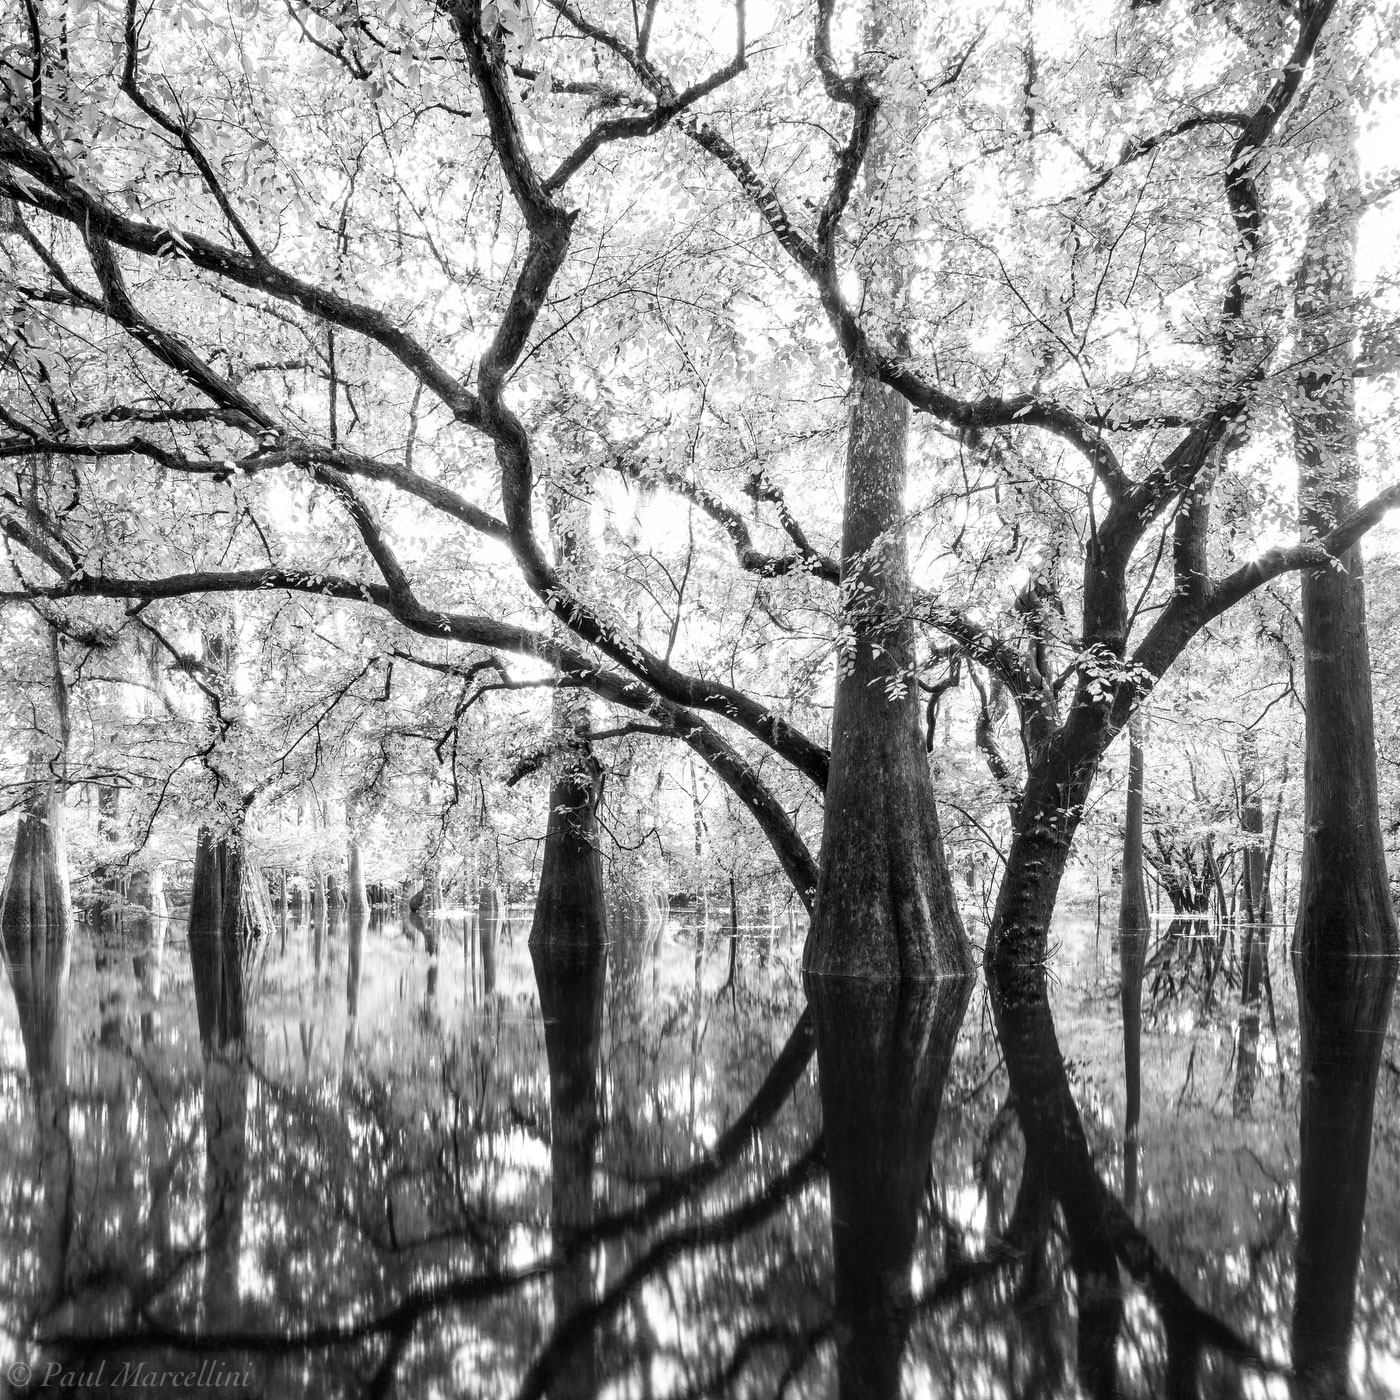 Suwannee Valley, Florida, swamp, water birch, nature, photography, photo